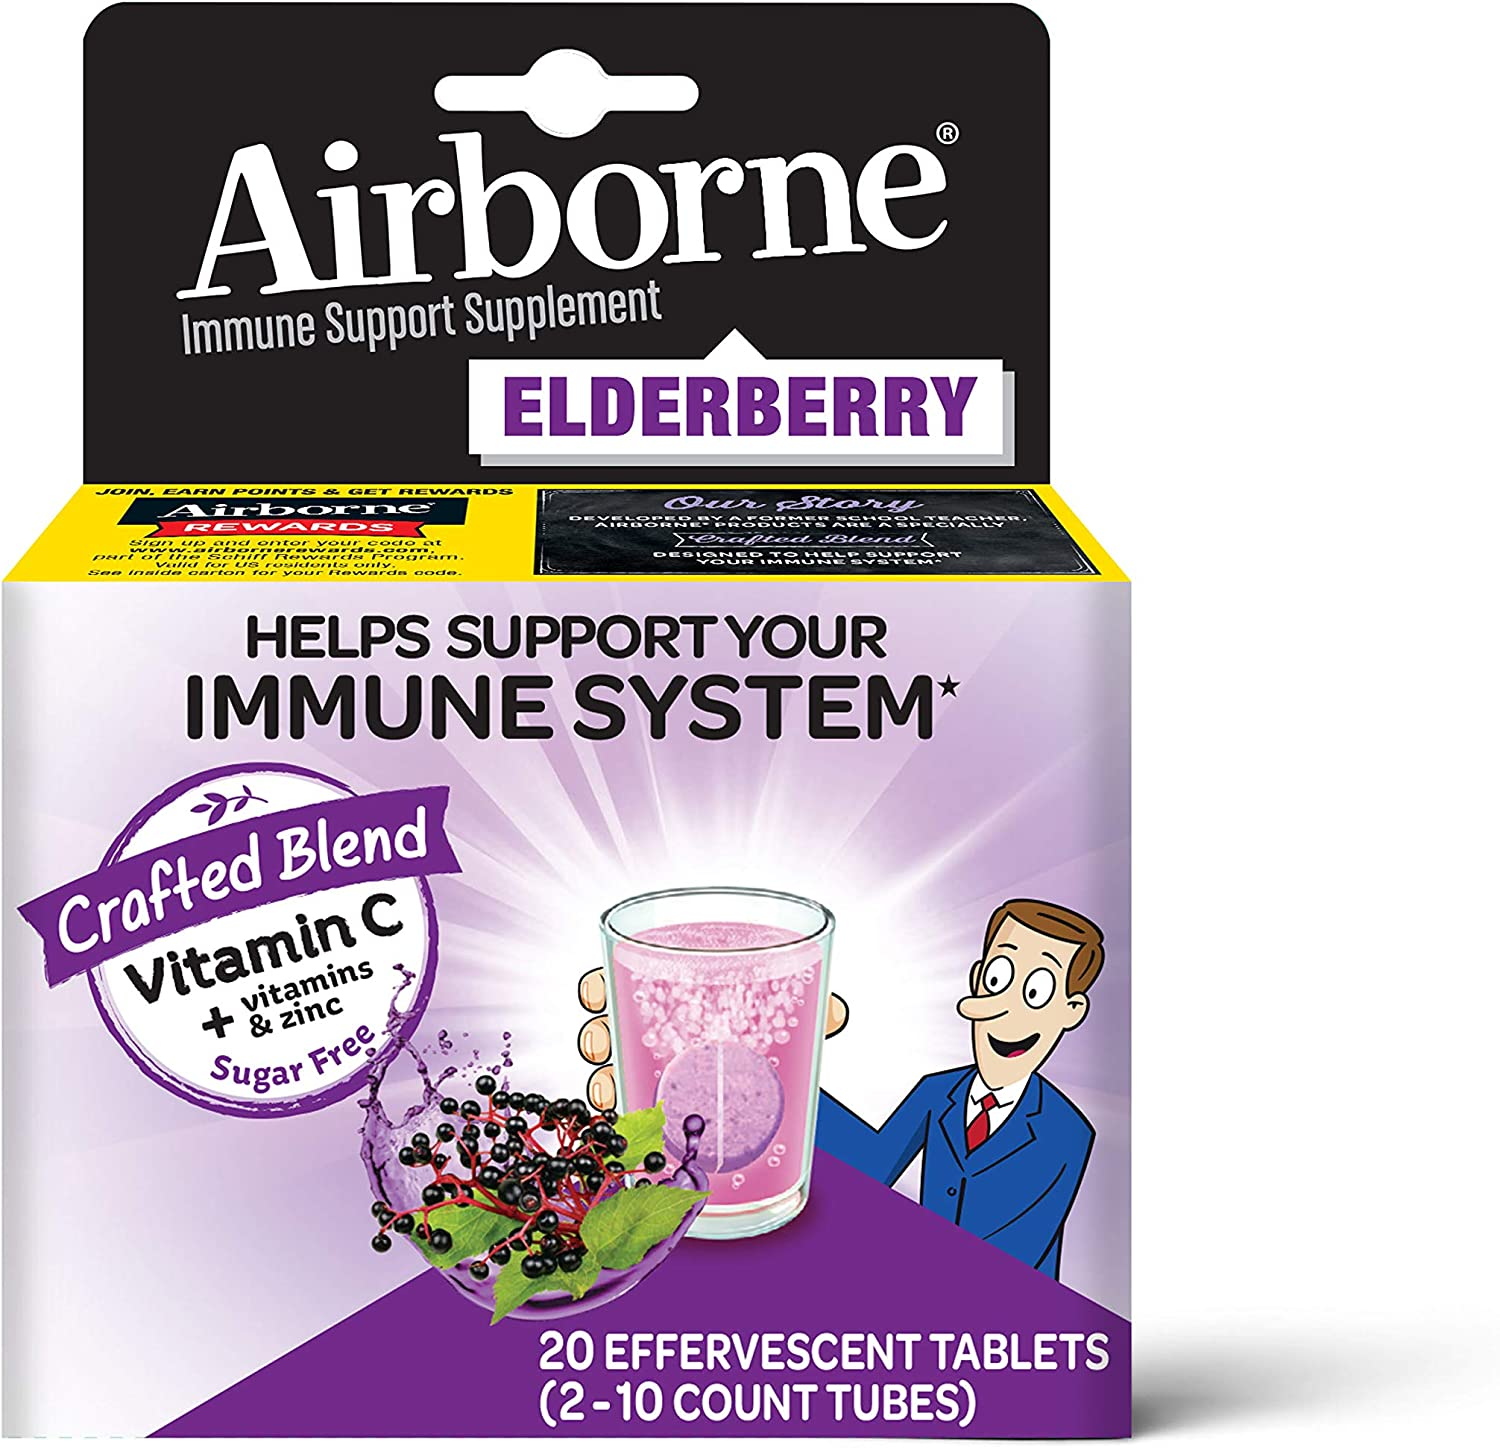 Elderberry Extract + Vitamin C - Airborne Effervescent Tablets (20 count in a box), Immune Support Supplement With Zinc & Vitamins C D E, Gluten Free, Sambucus, Antioxidant: Health & Personal Care